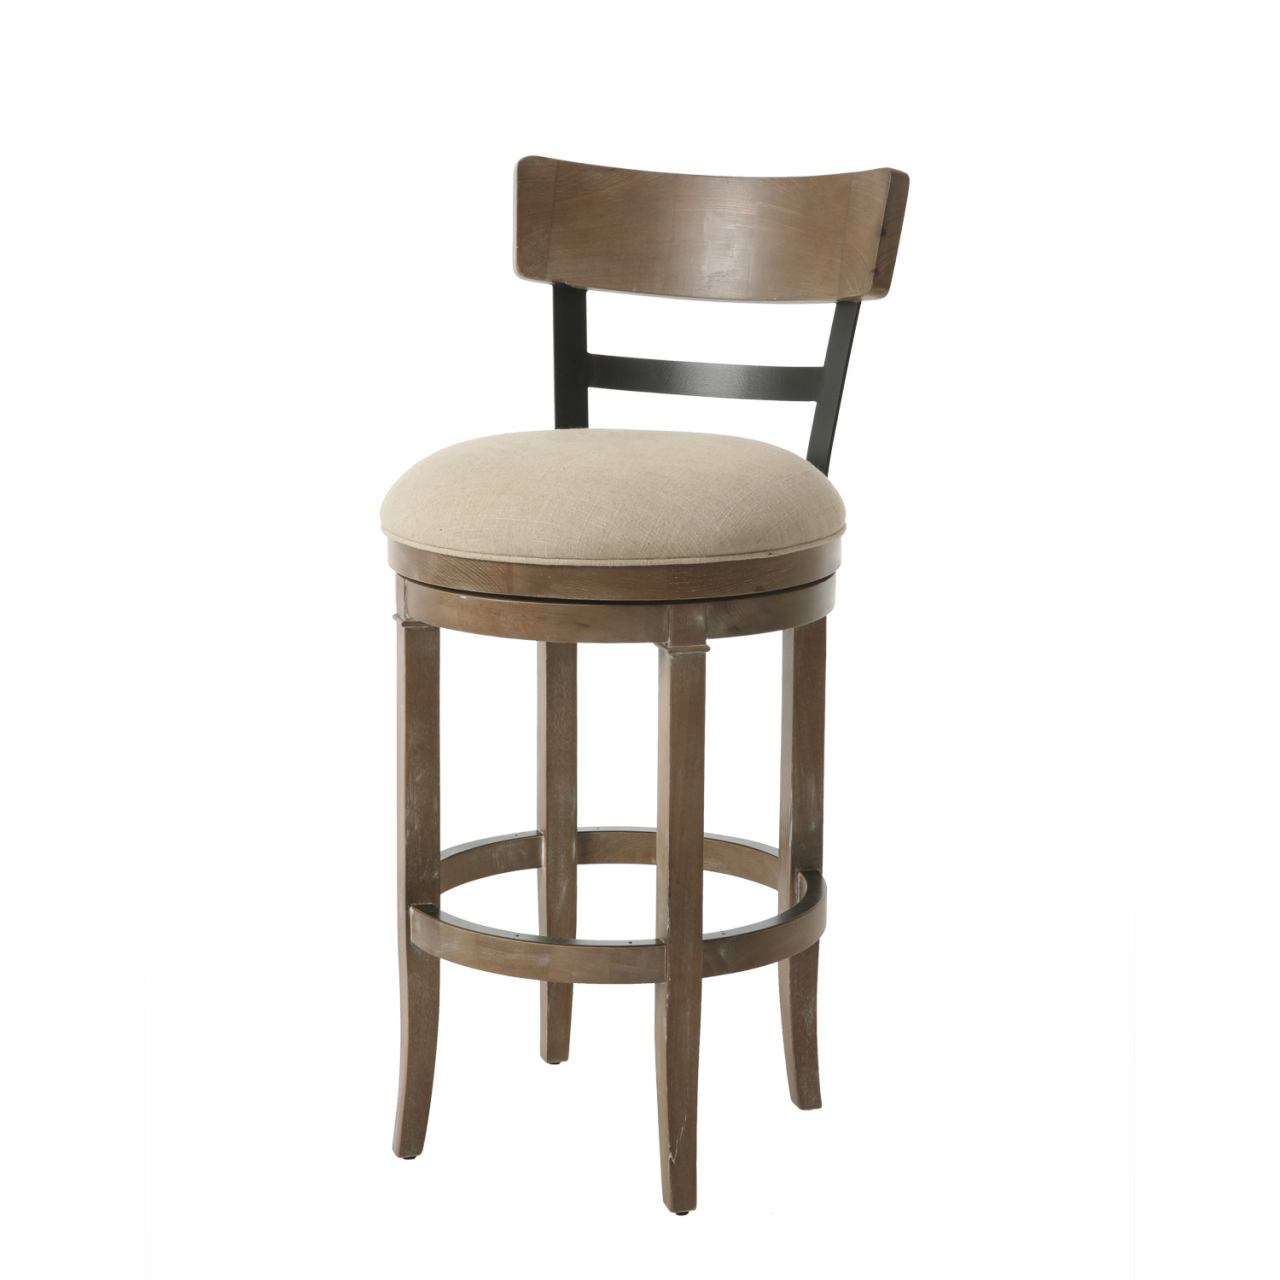 Pastel Furniture Susan Swivel Barstool in Distressed Charcoal SS-225-30-DM-DI-353 (Set Of 2)